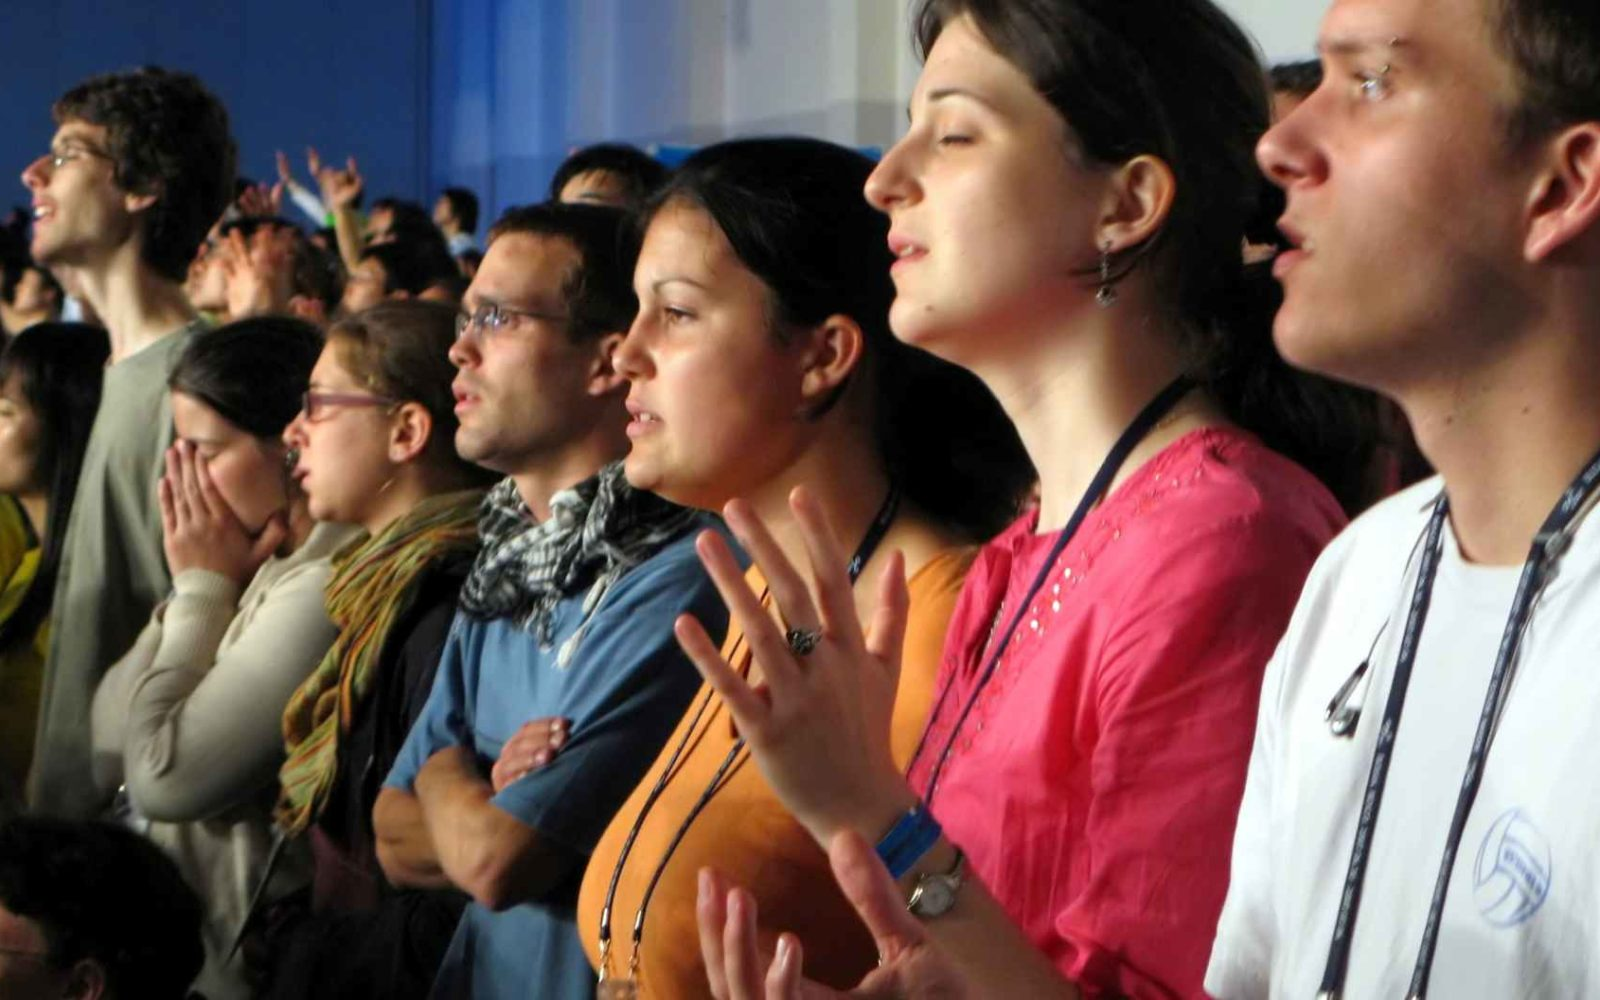 People worshiping at church